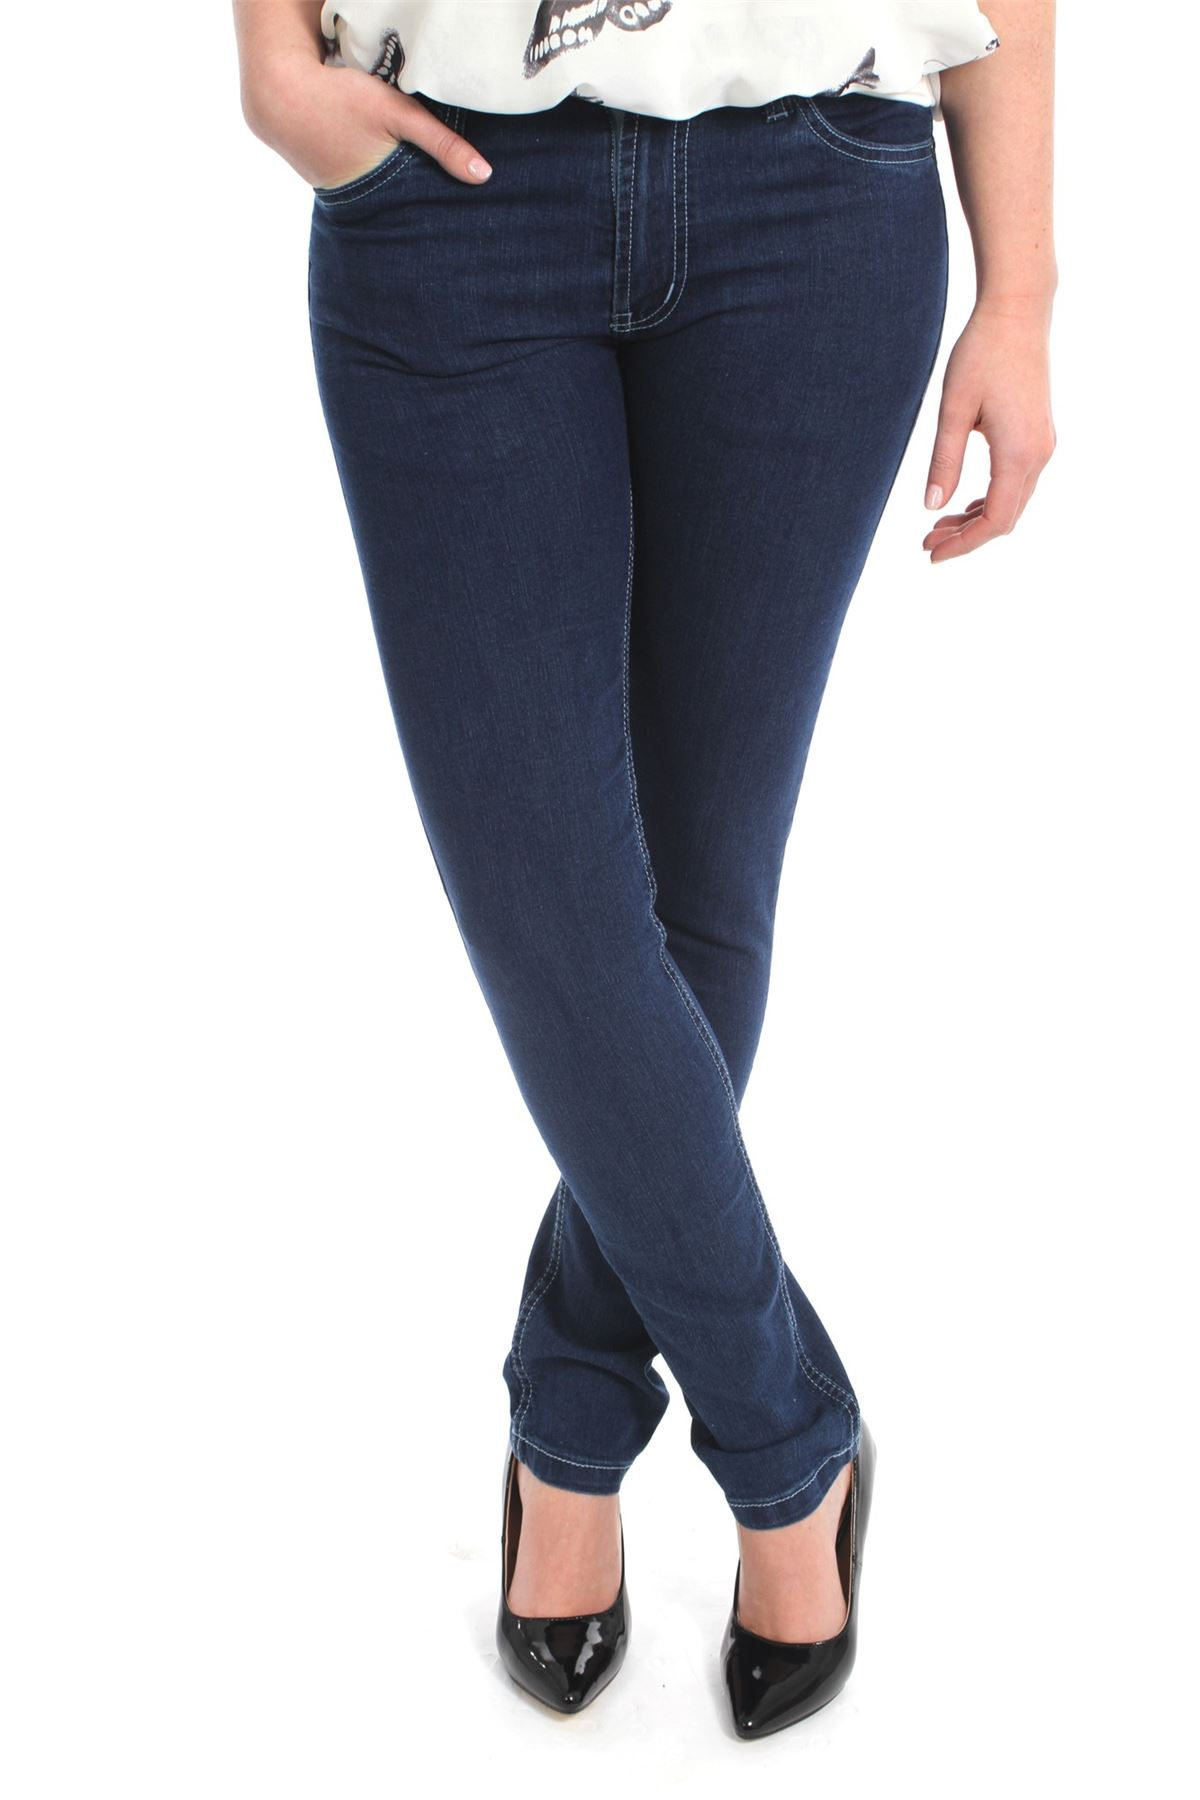 Slim Fit Jeans Women's slim fit jeans are made to fit tighter in the seat and thigh. While, the leg opening can vary from a skinny tapered look, such as the Levi's® ™ Superlow Skinny Jean, to a wider, more boot cut opening, like you'll find in the Wrangler and Cruel Girl jeans lines.